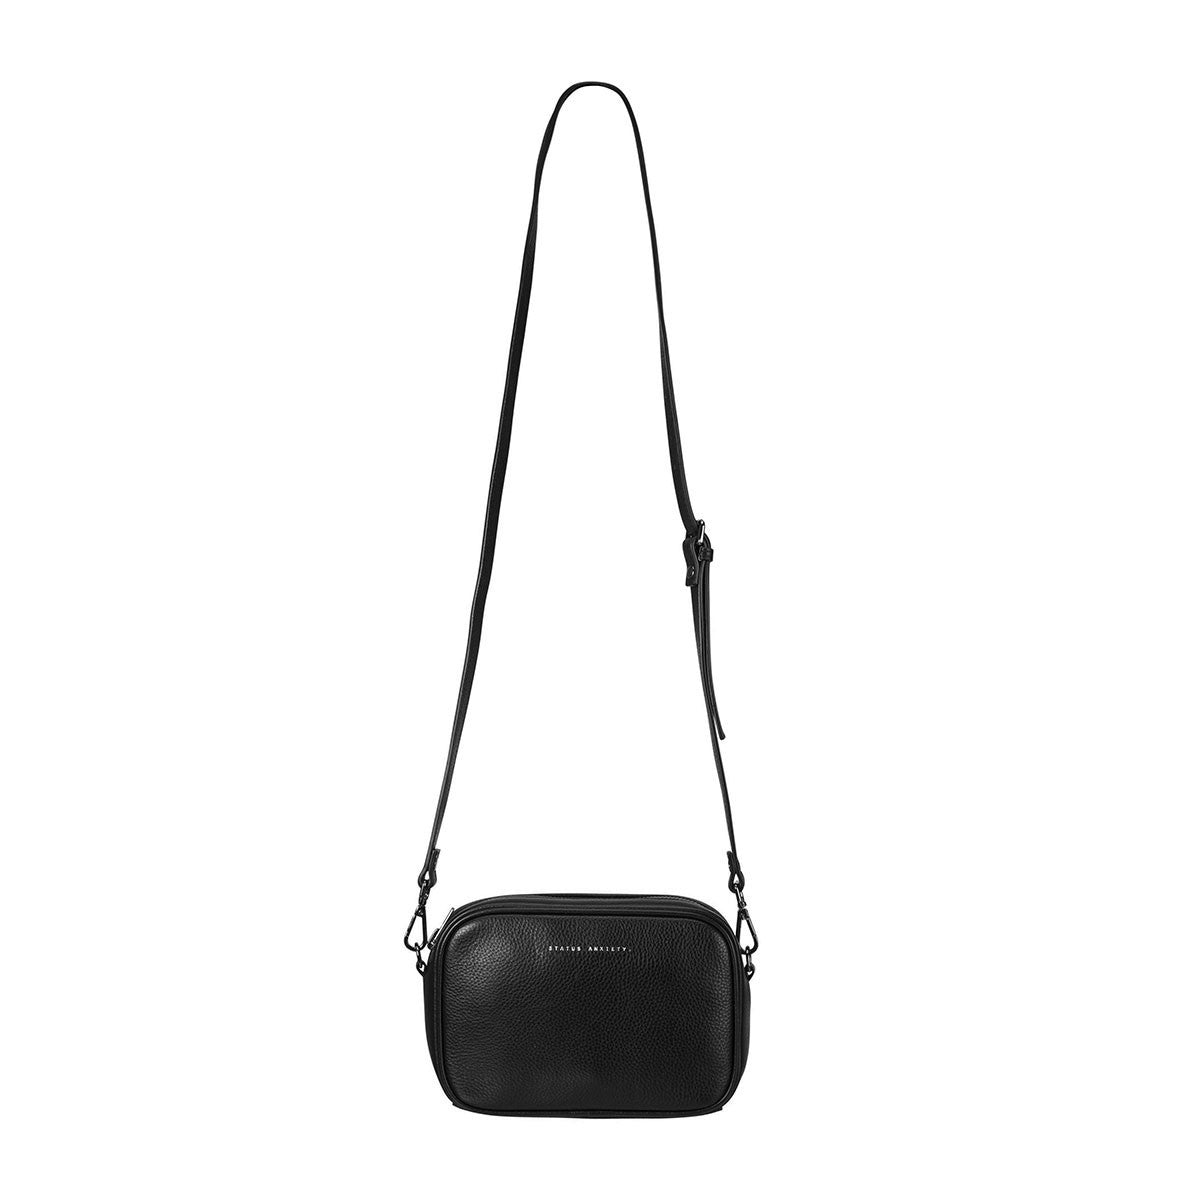 THE PLUNDER BLACK LEATHER BAG FROM STATUS ANXIETY